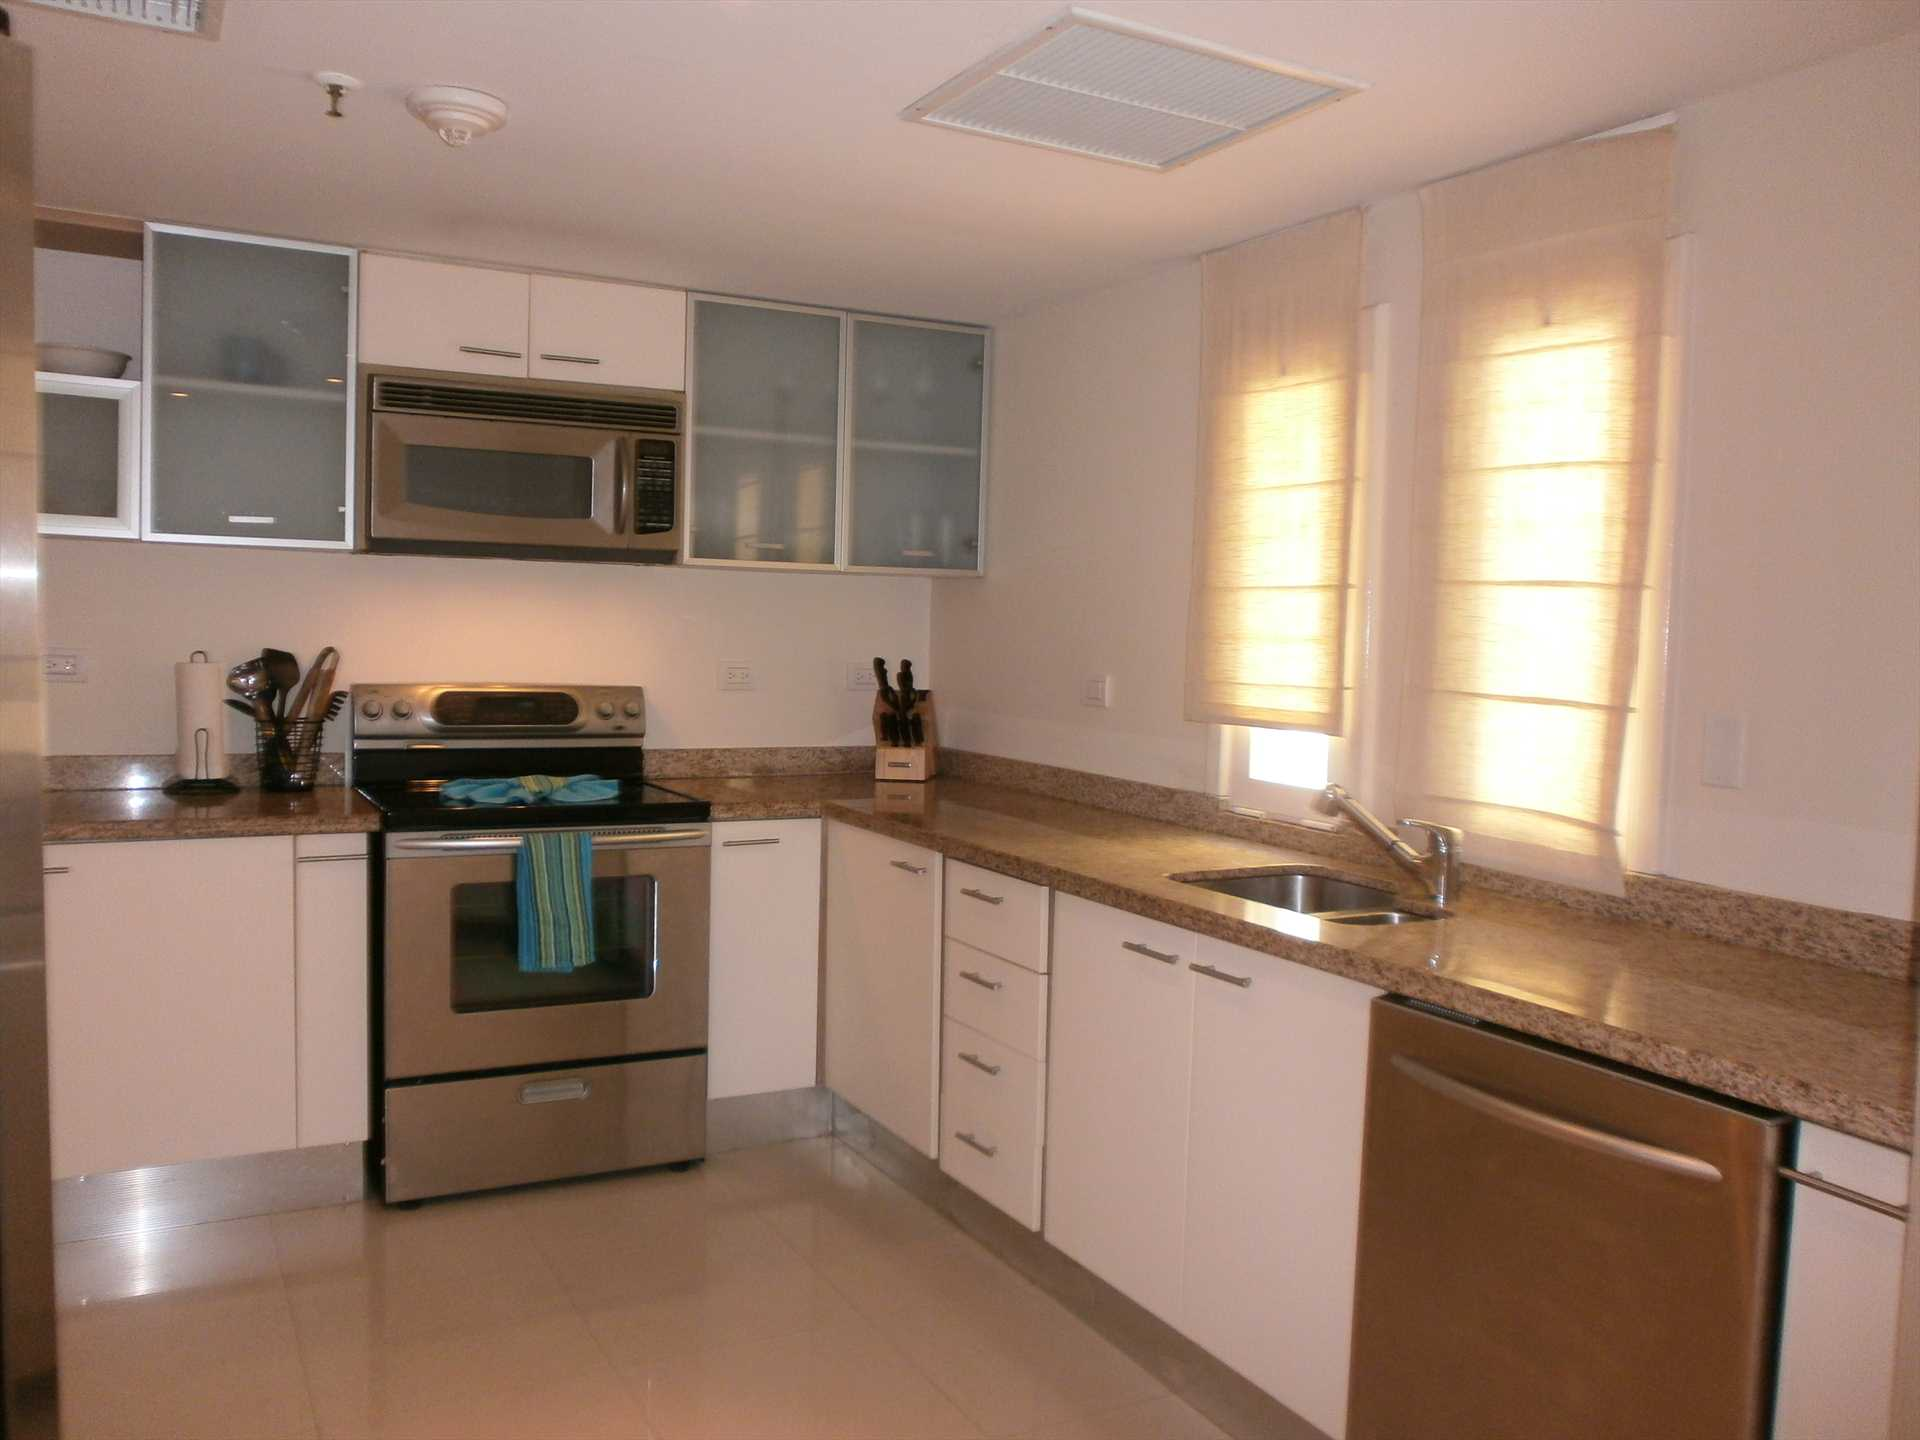 Large, fully equipped modern kitchen in an enlosed area